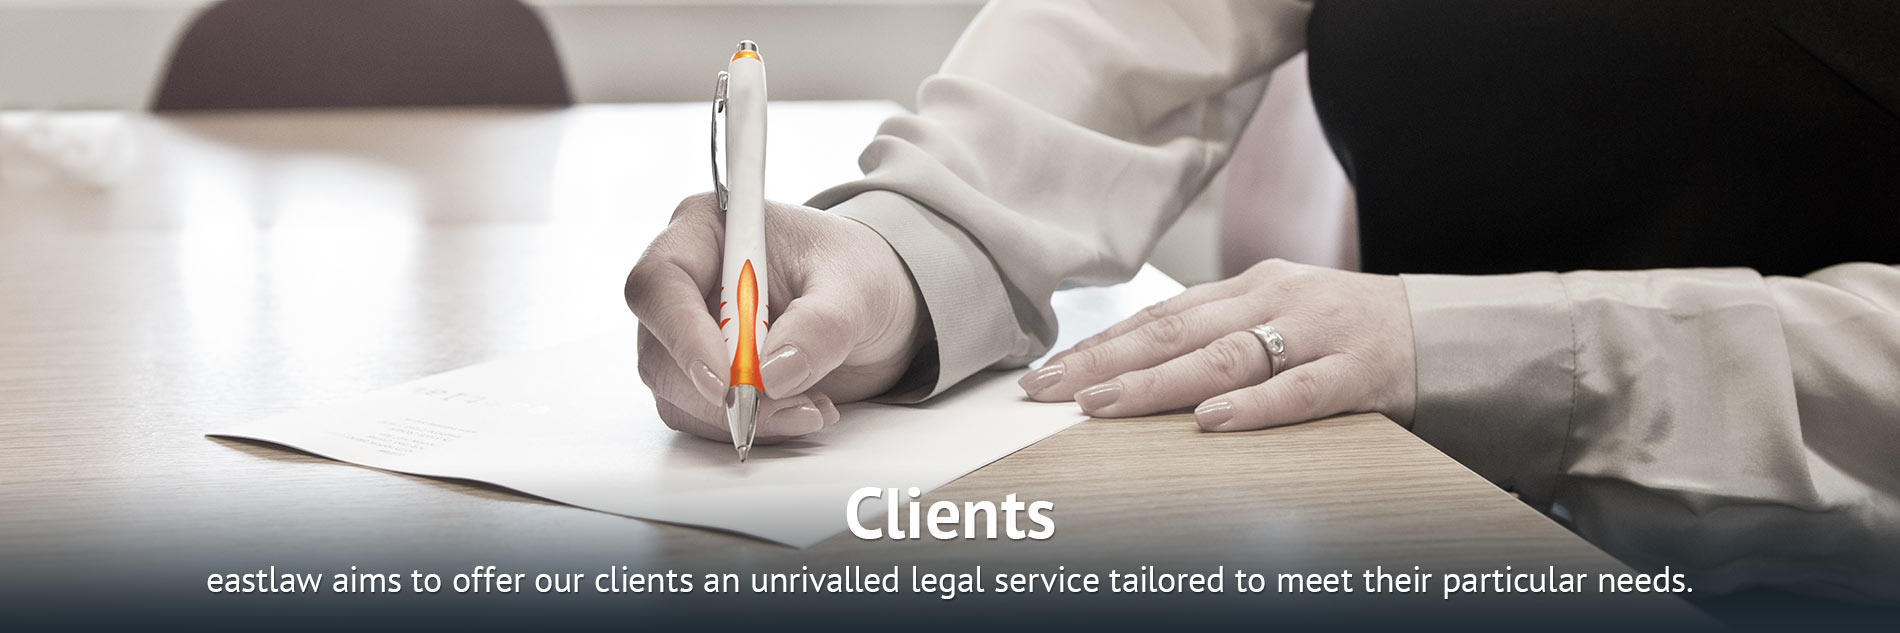 Clients: eastlaw aims to offer our clients an unrivalled legal service tailored to meet their particular needs.